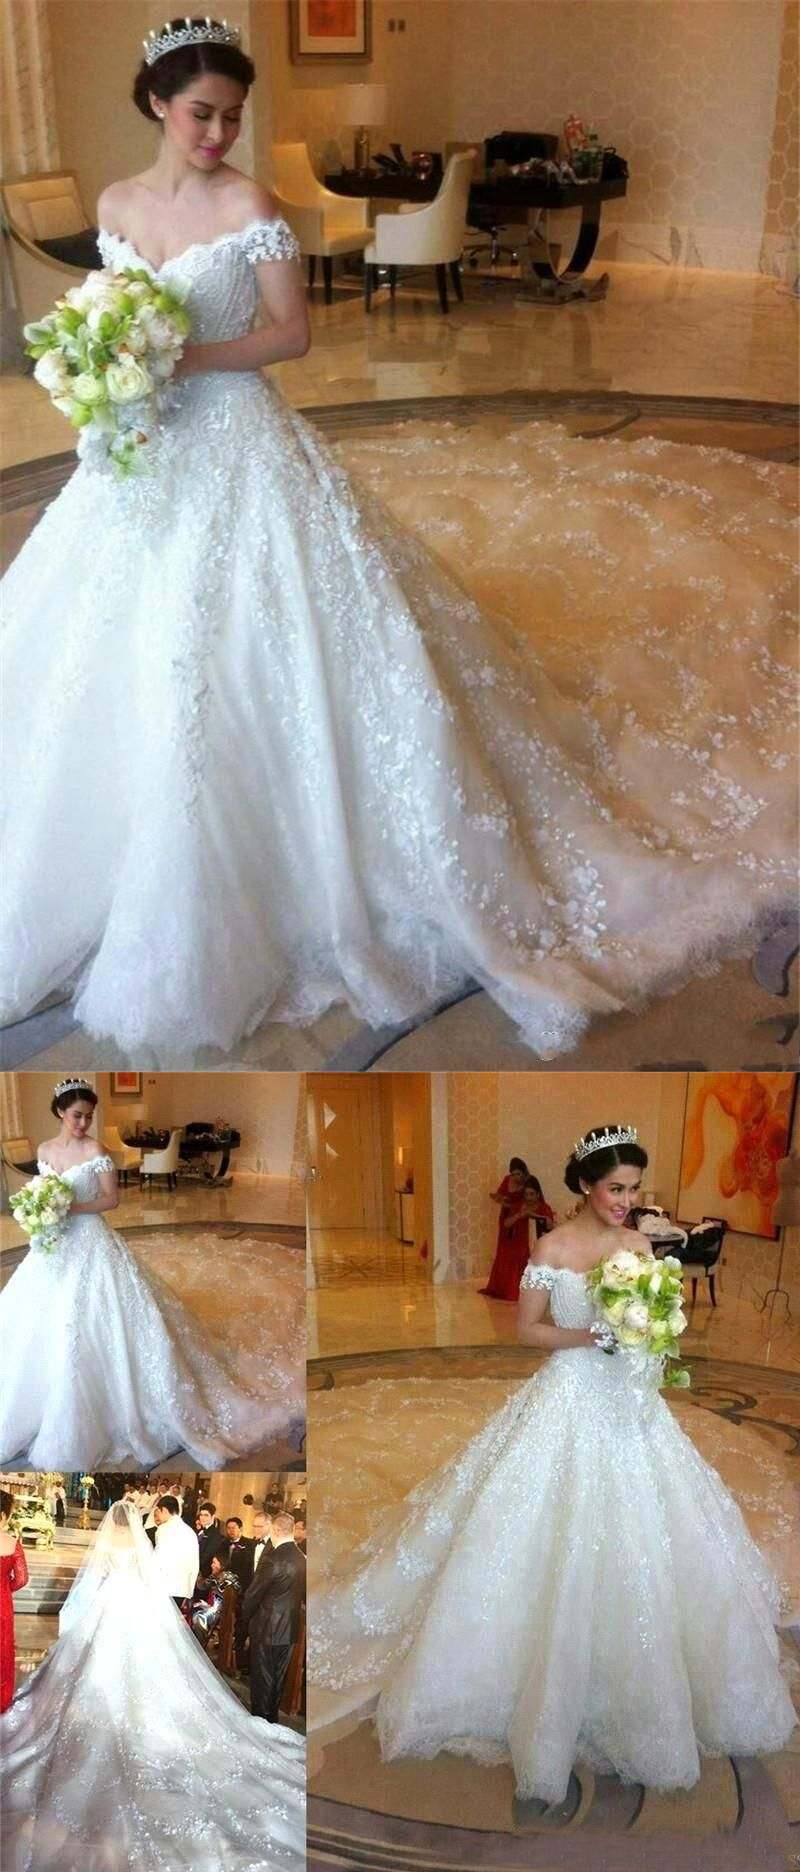 Luxurious Off-the-Shoulder Wedding Dress Bridal Gown with Lace ... 75c7b6b0669c